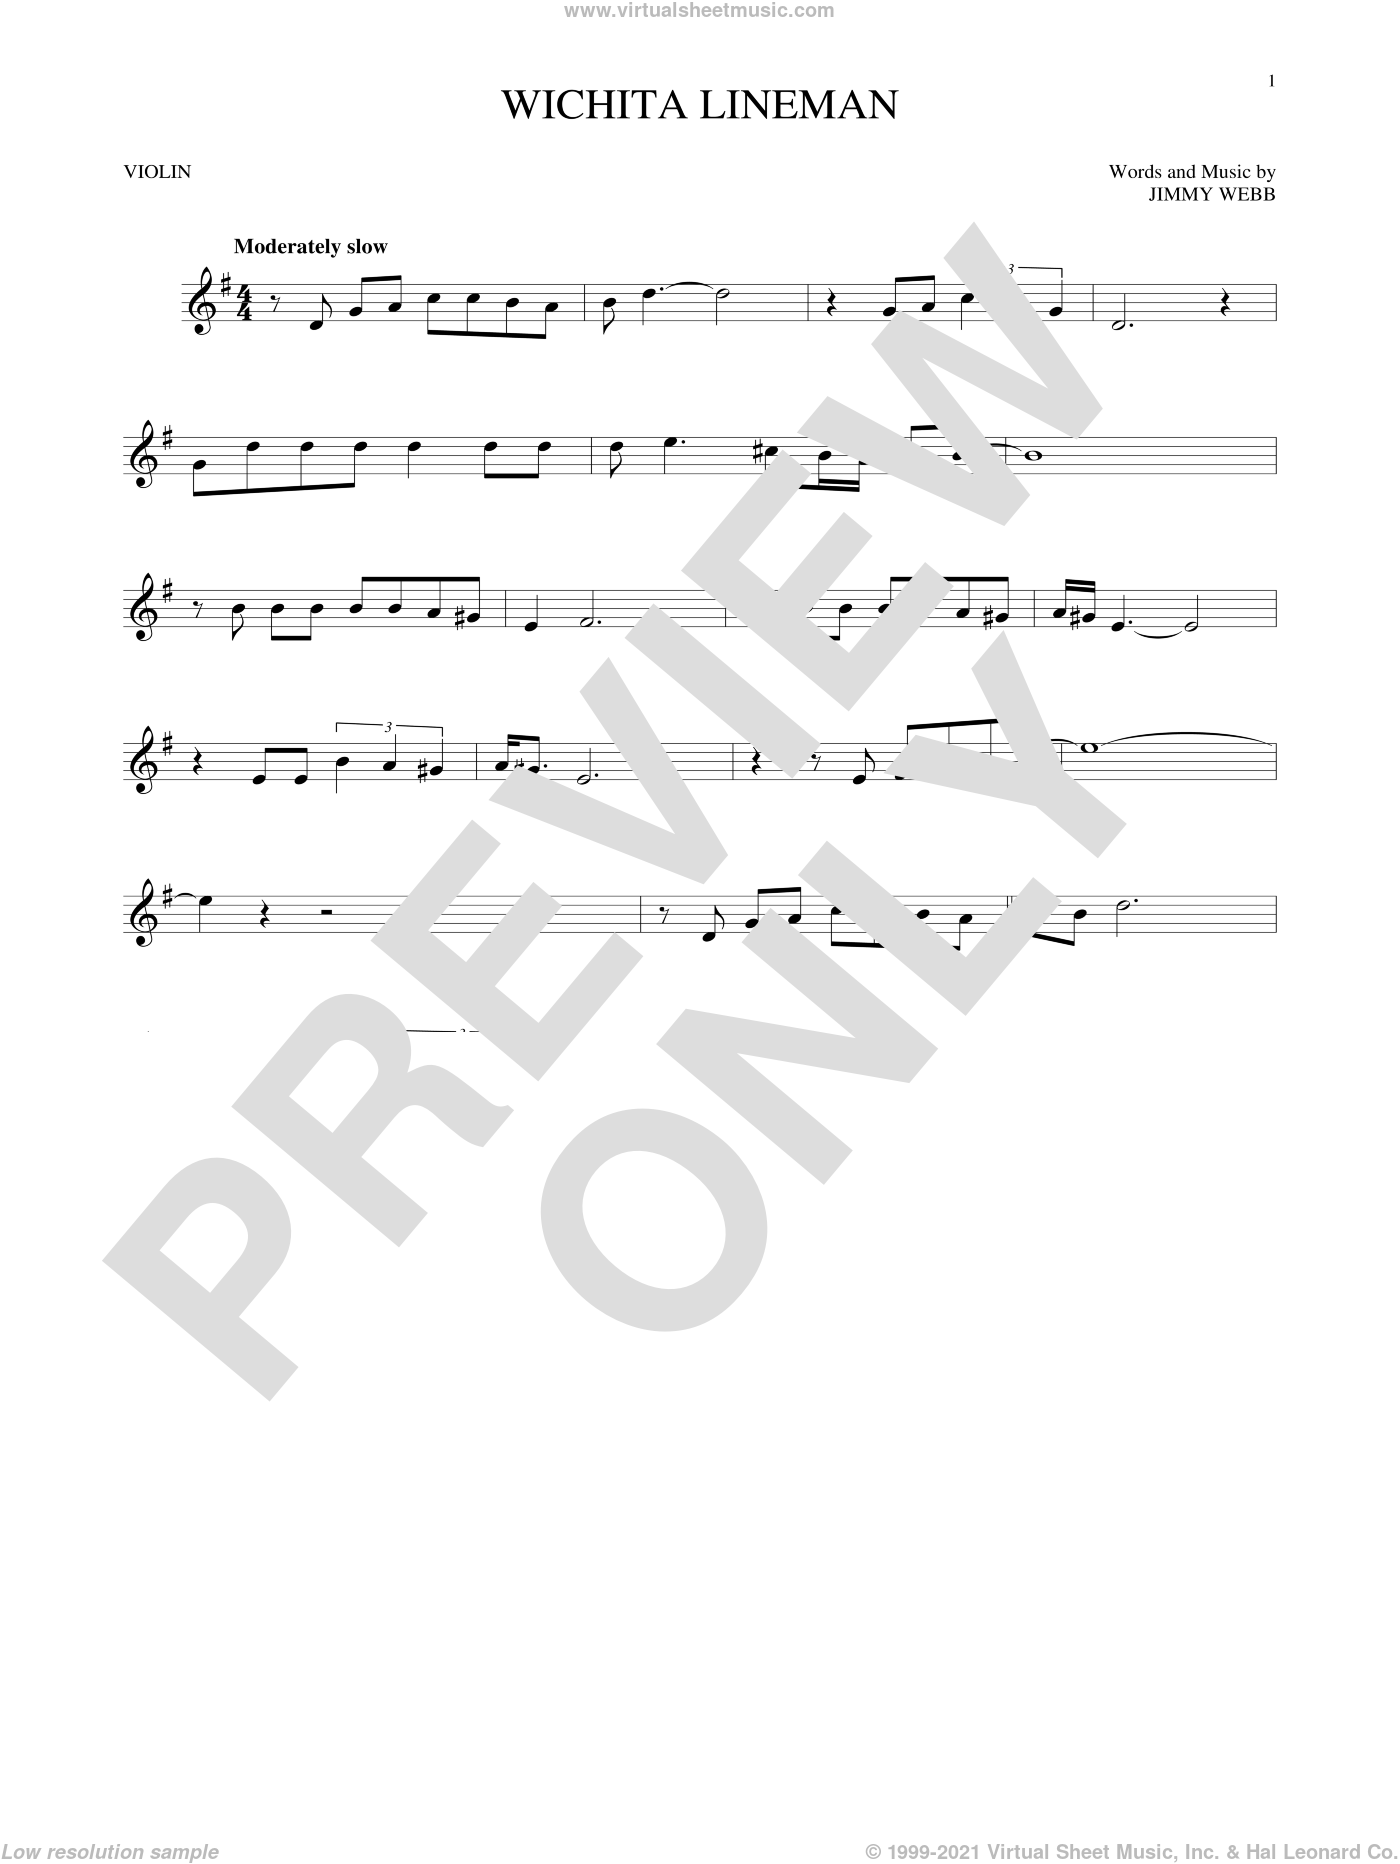 Wichita Lineman sheet music for violin solo by Glen Campbell, Wade Hayes and Jimmy Webb, intermediate skill level